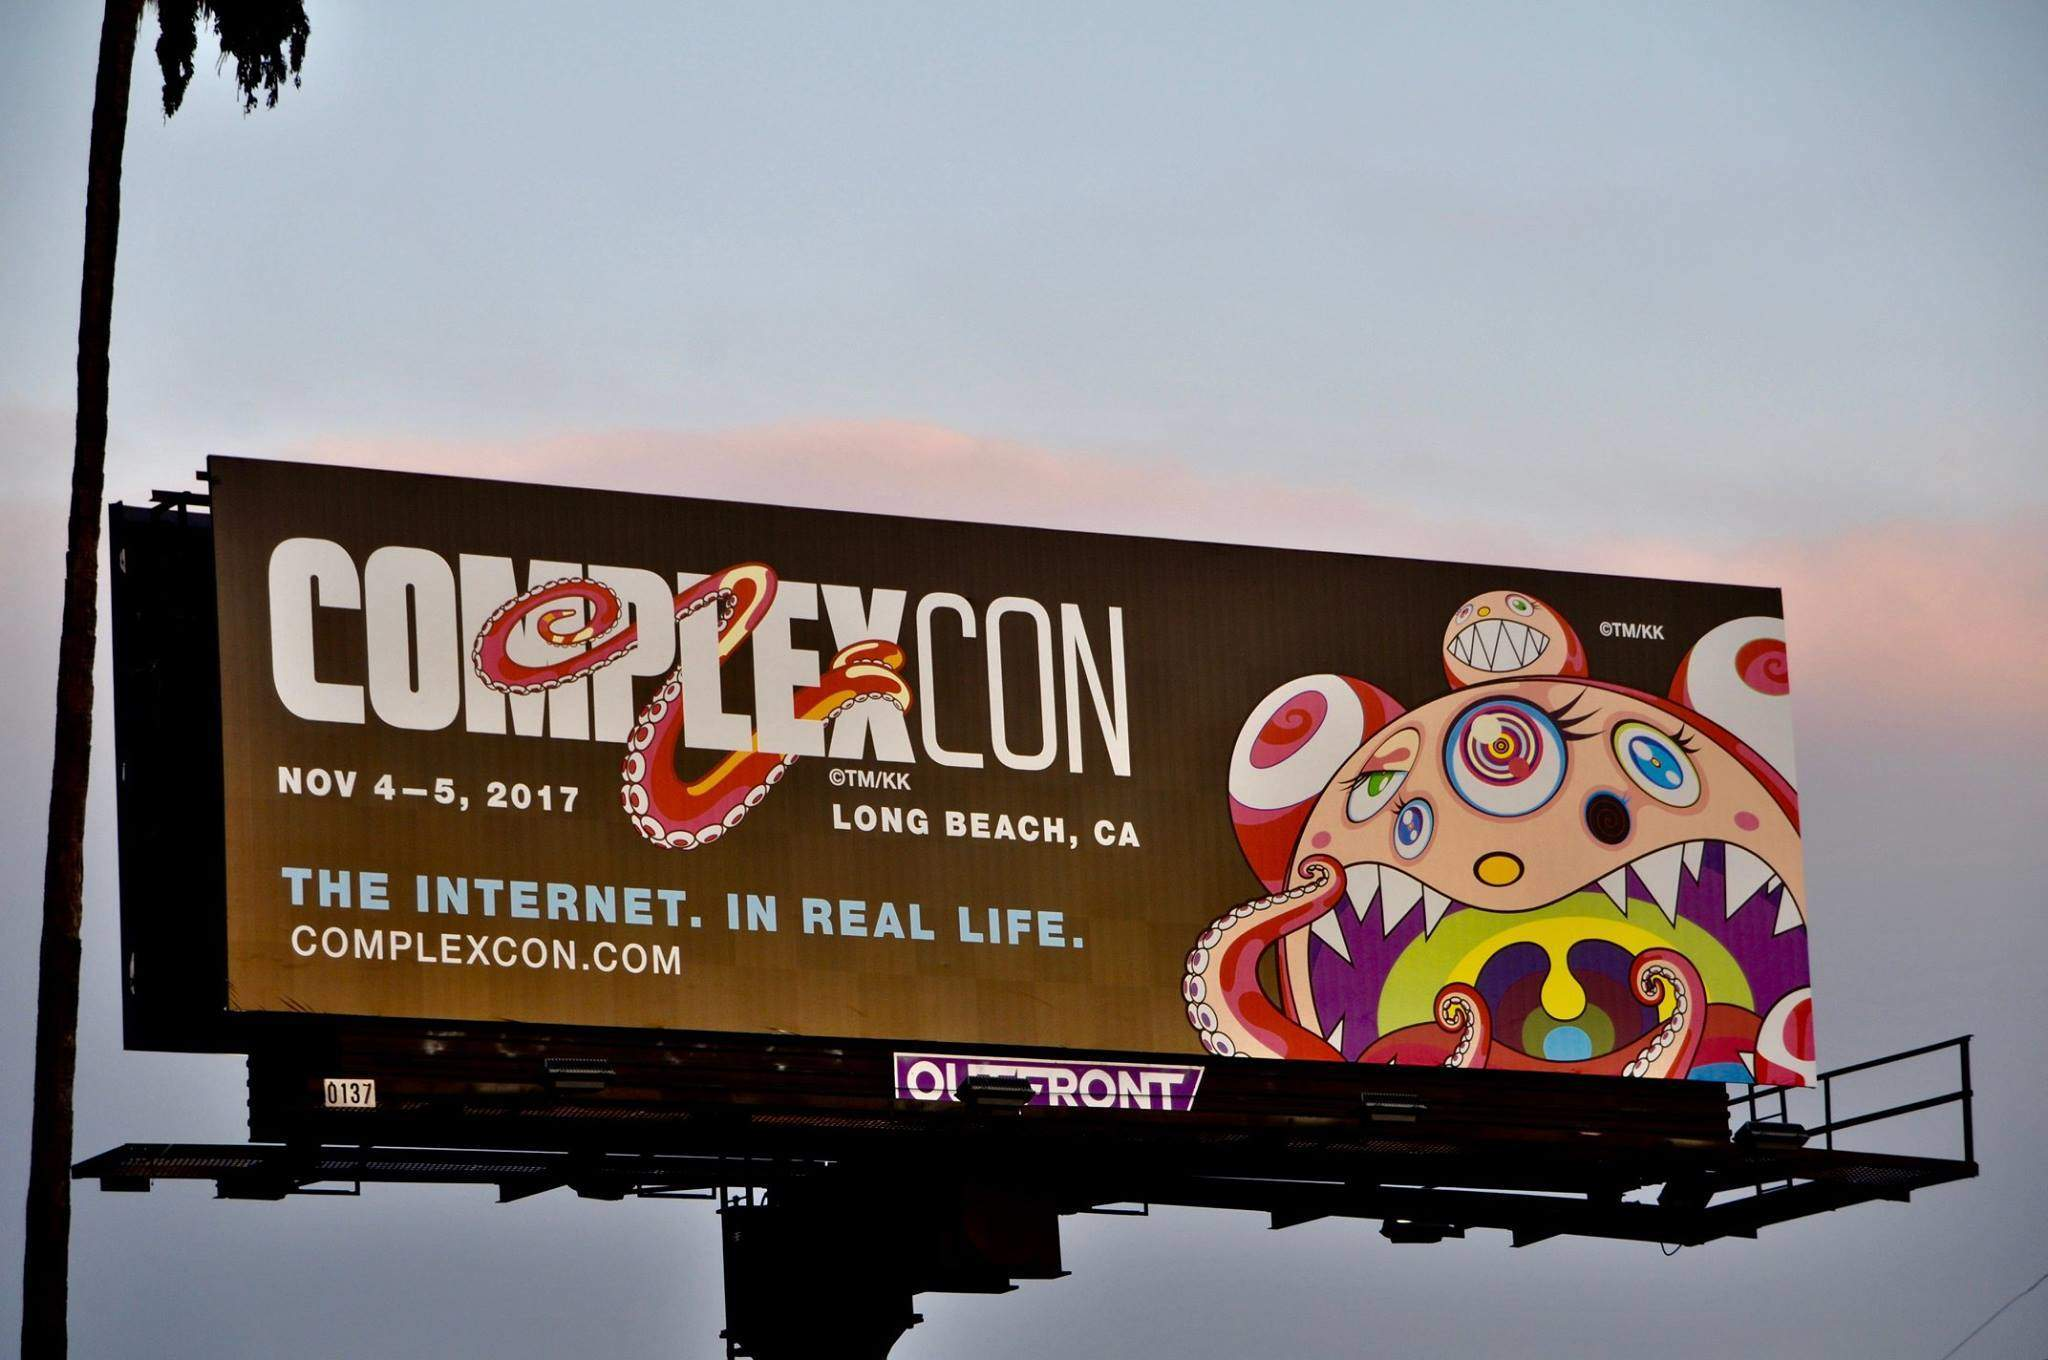 ComplexCon tickets, schedule and details ahead of The Internet in Real Life